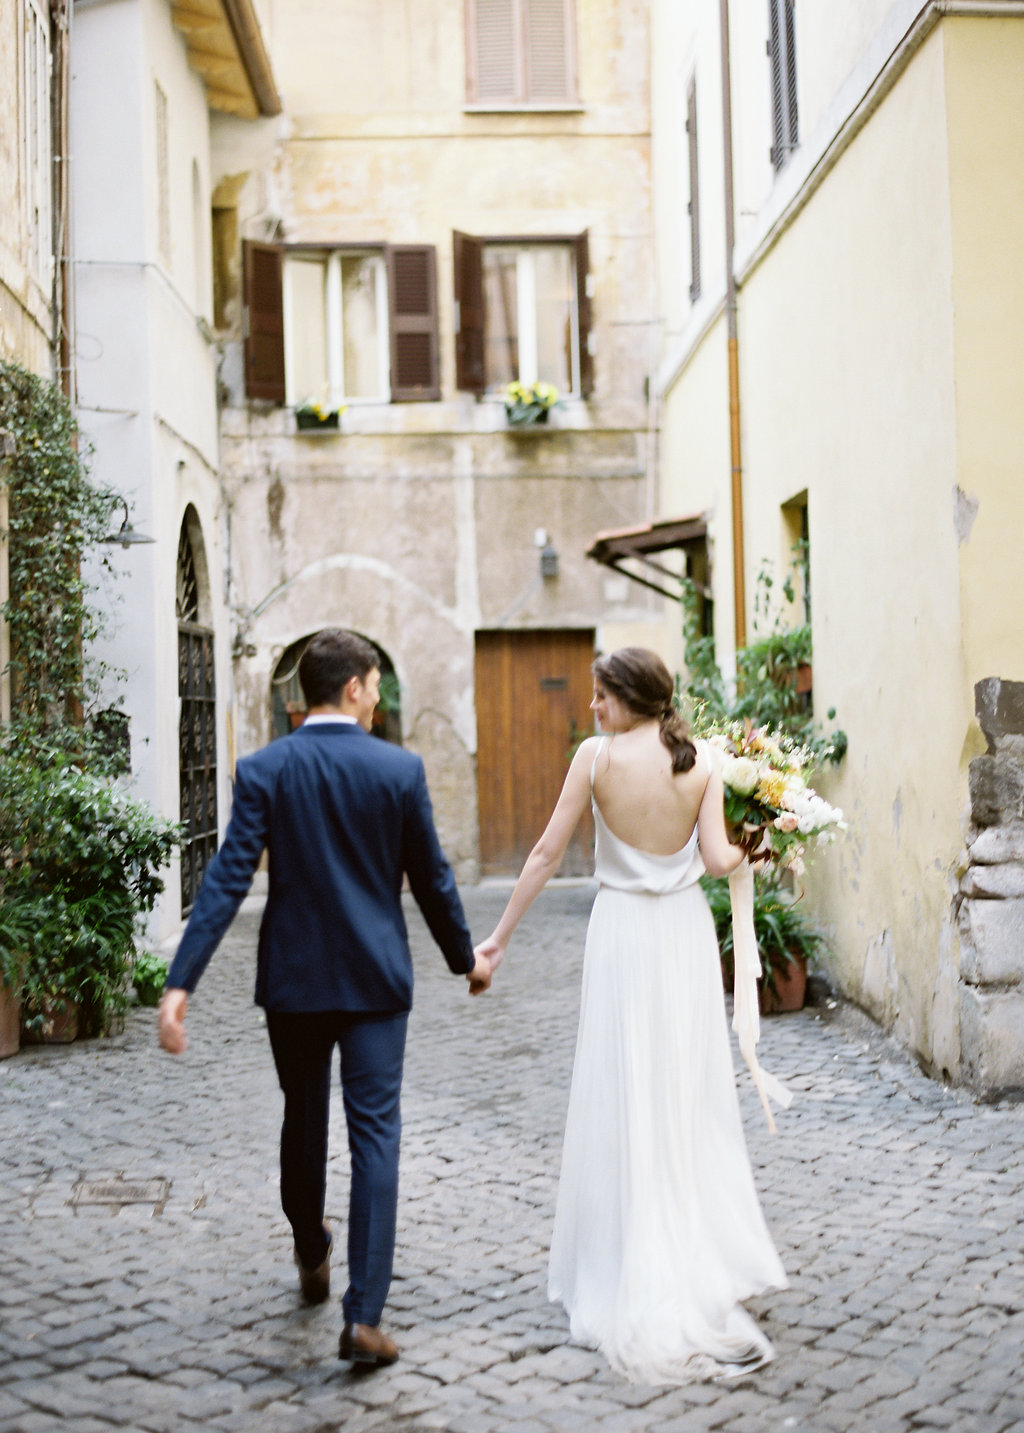 Vicki_Grafton_Photography_Rome_Italy_Wedding_Photographer_2017-145.jpg